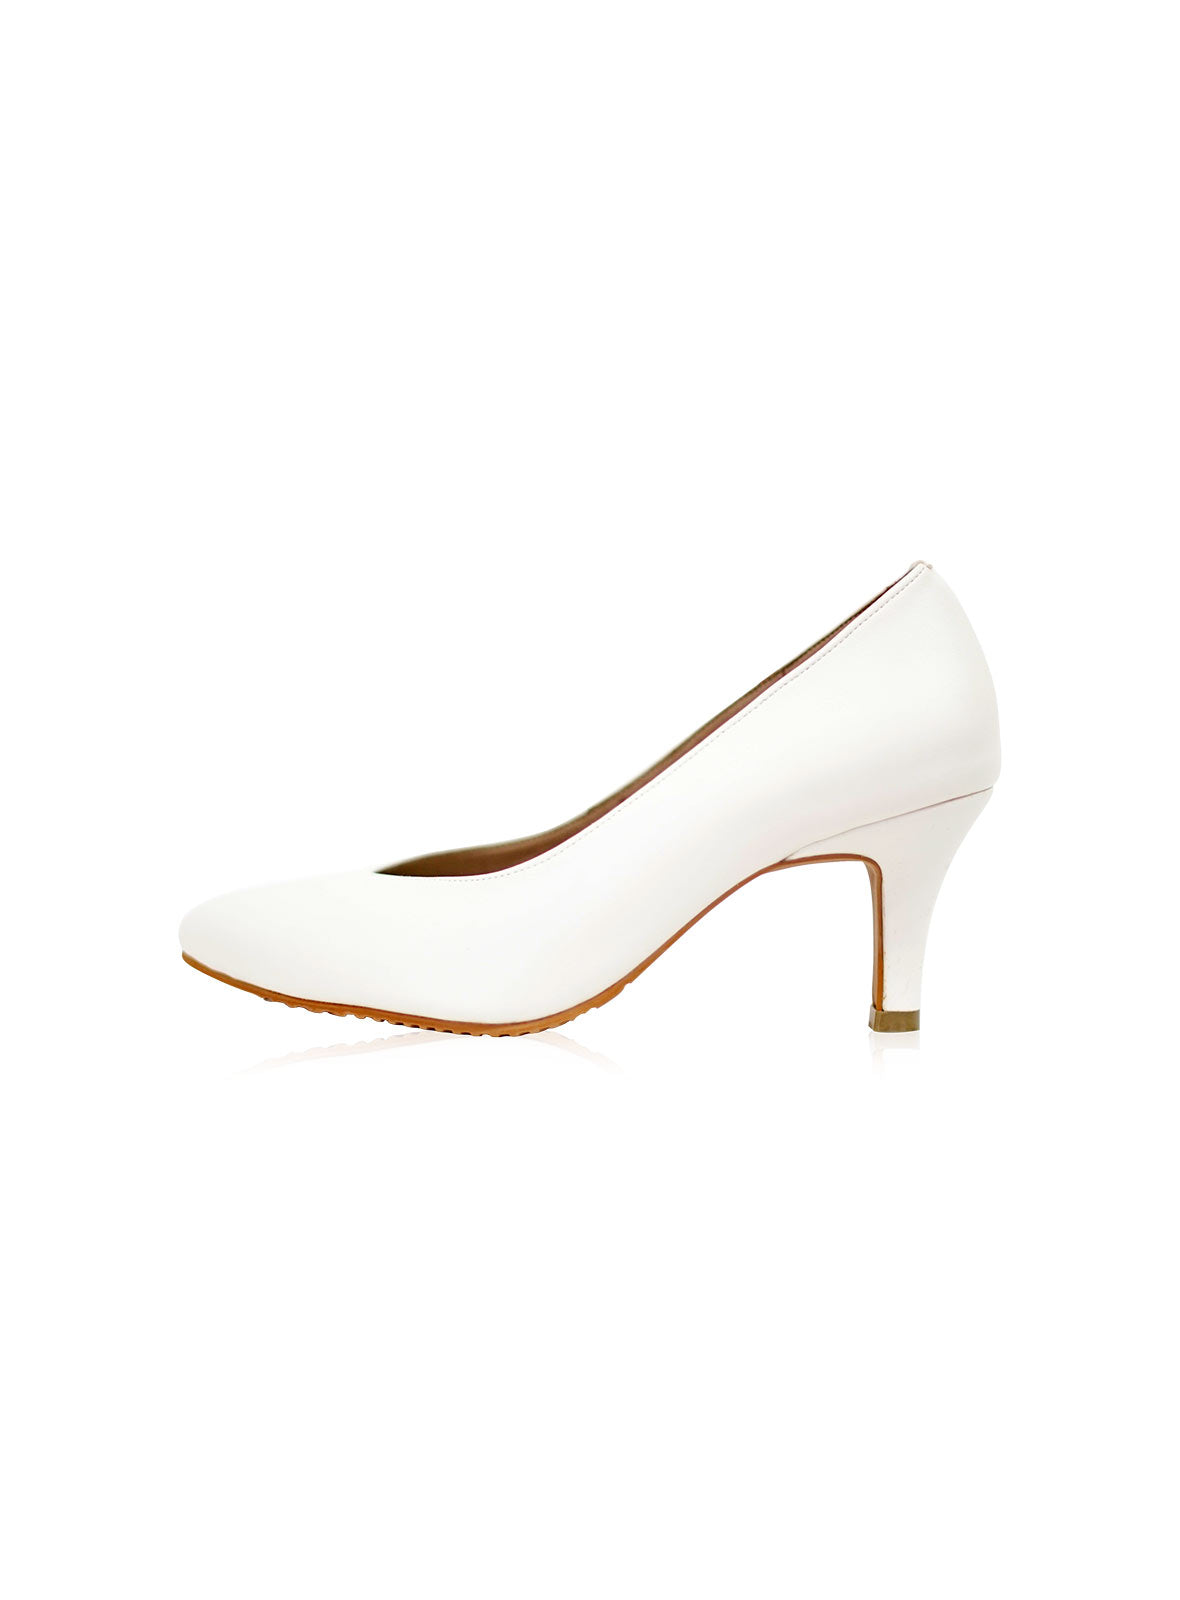 Finley Heels in White